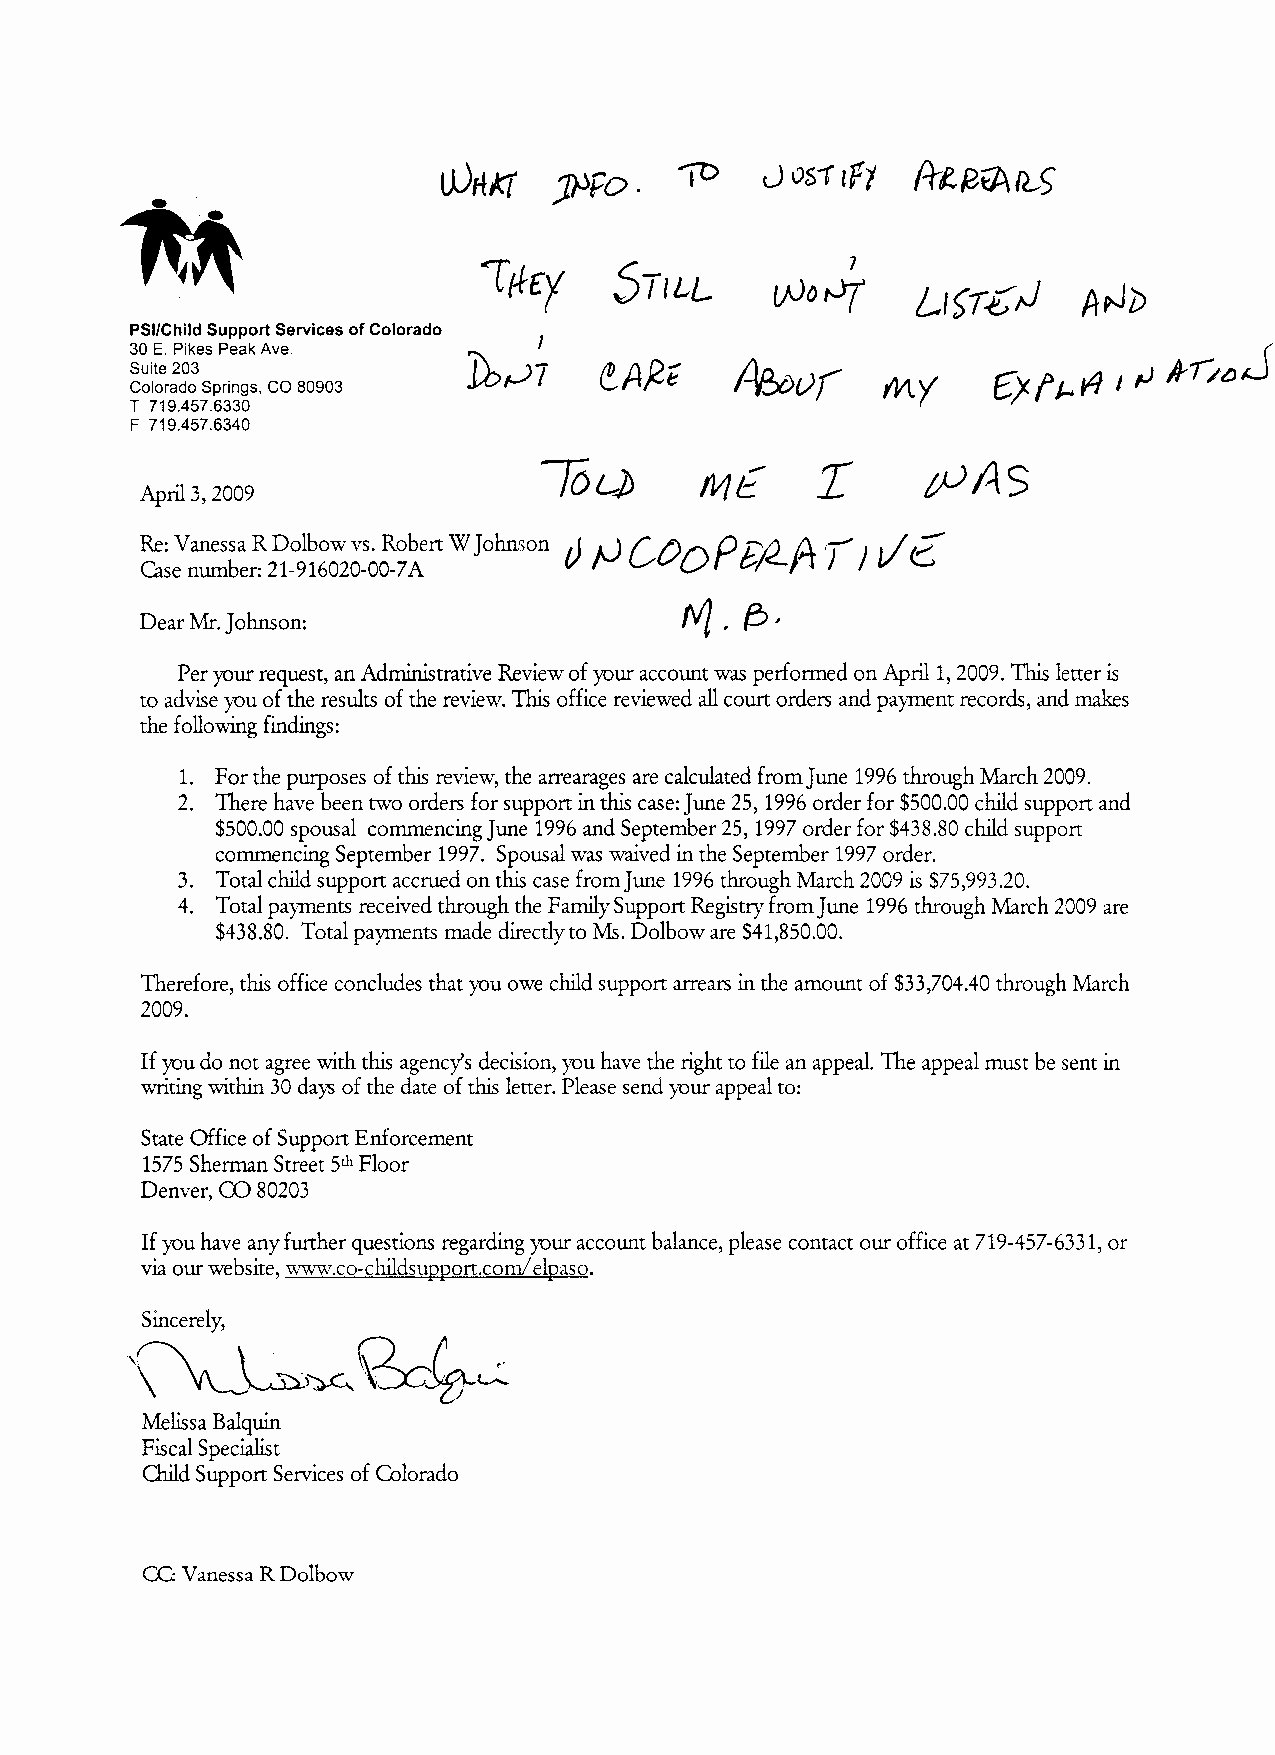 Modification Of Child Support Letter Samples Beautiful I Child Support Enforcement Case 21 00 7a